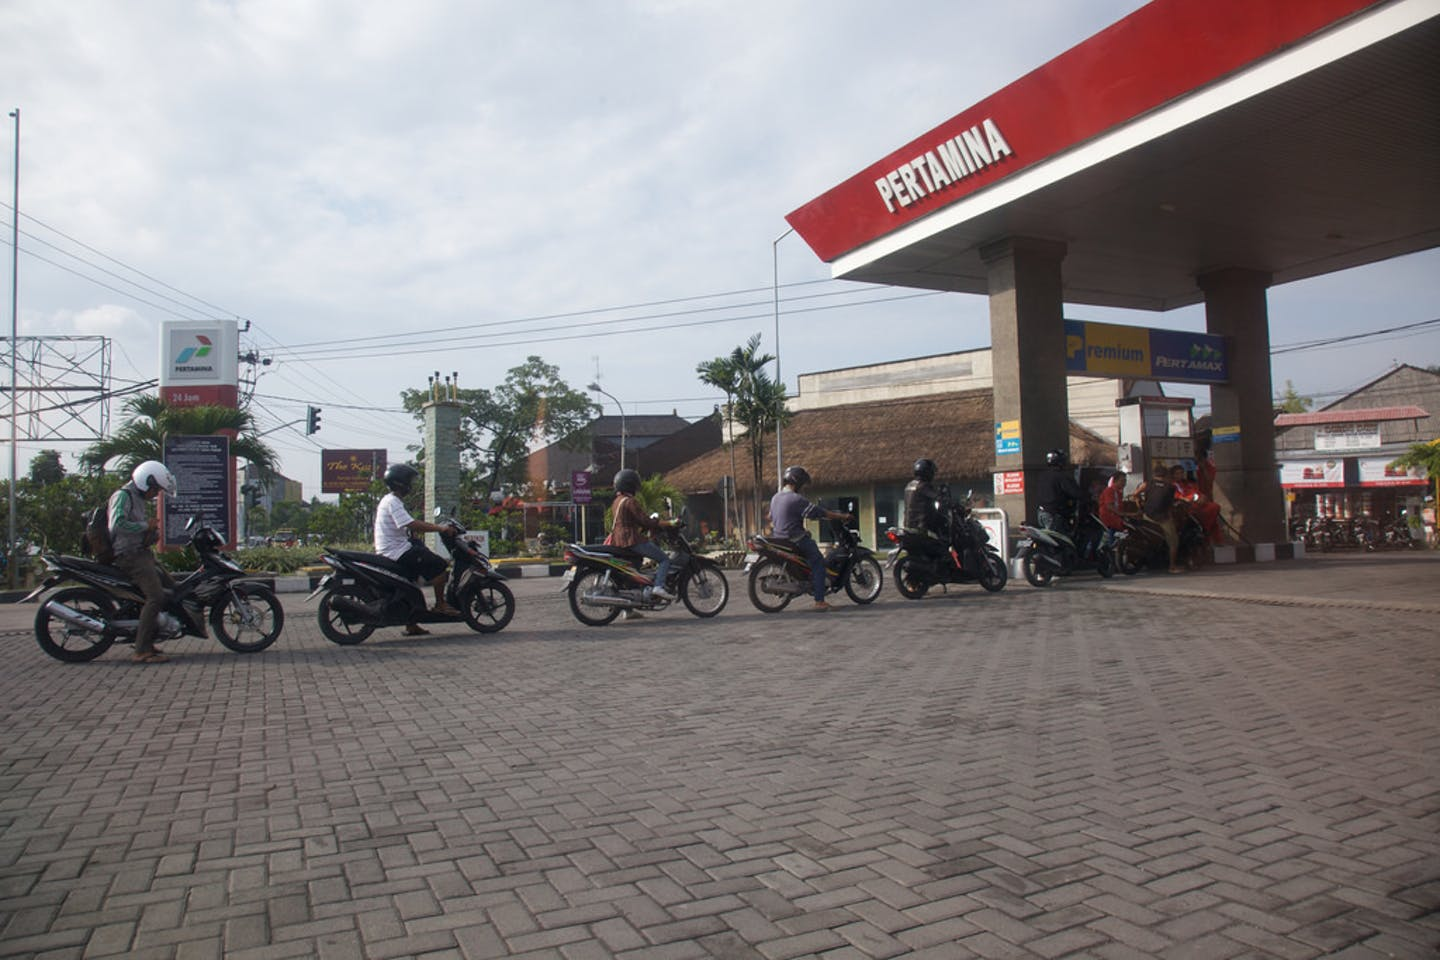 Motorists queue for fuel at a petrol kiosk in Seminyak, Bali.